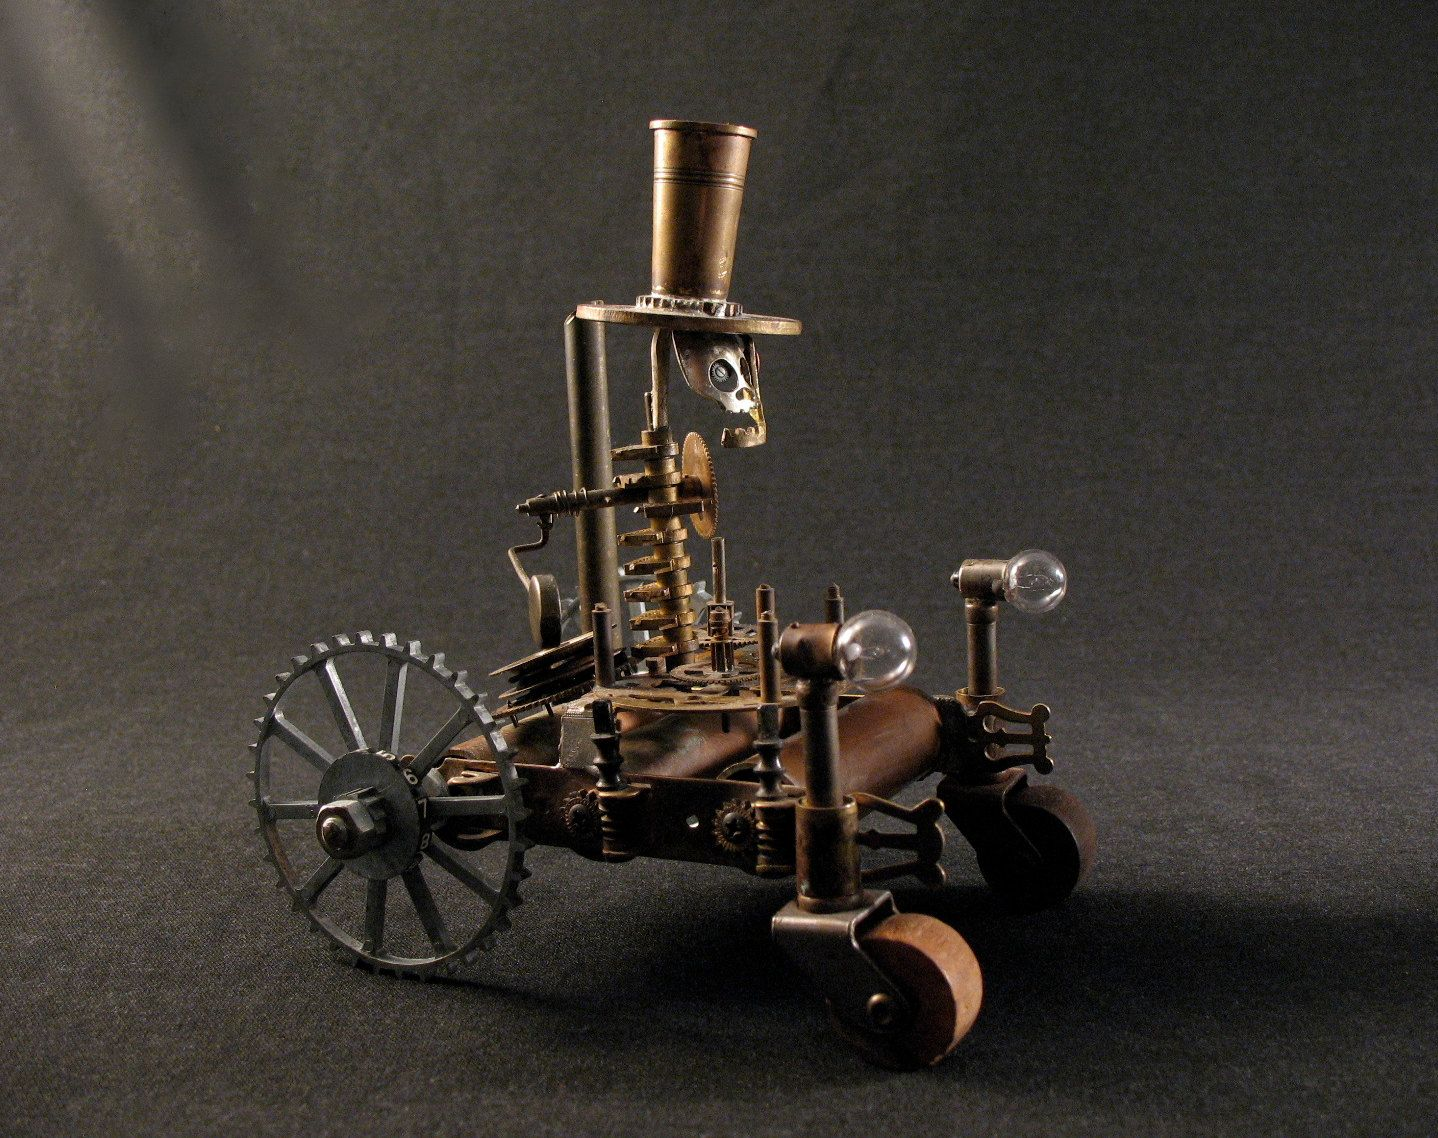 Steampunk car steampunk pinterest cars sculpture and tractors